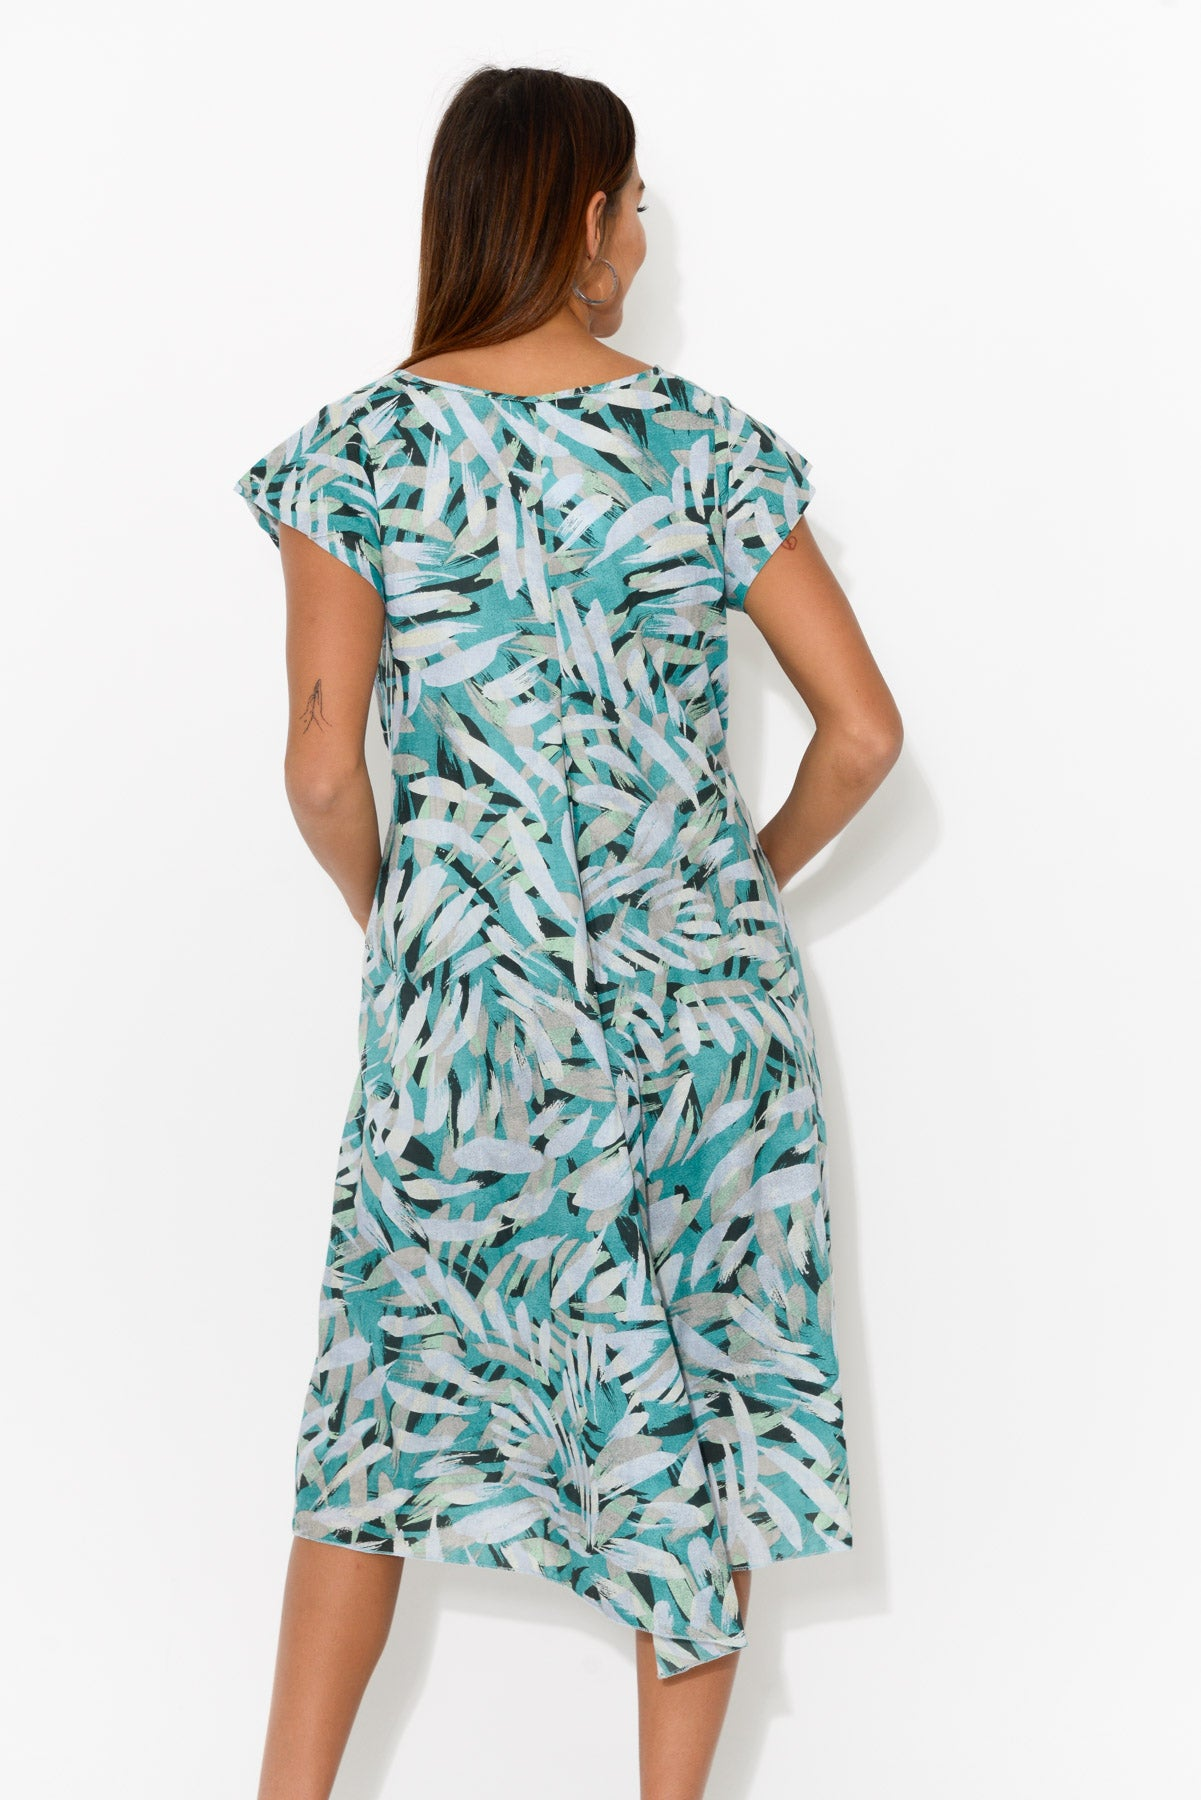 Maheno Aqua Palm Cotton Dress - Blue Bungalow